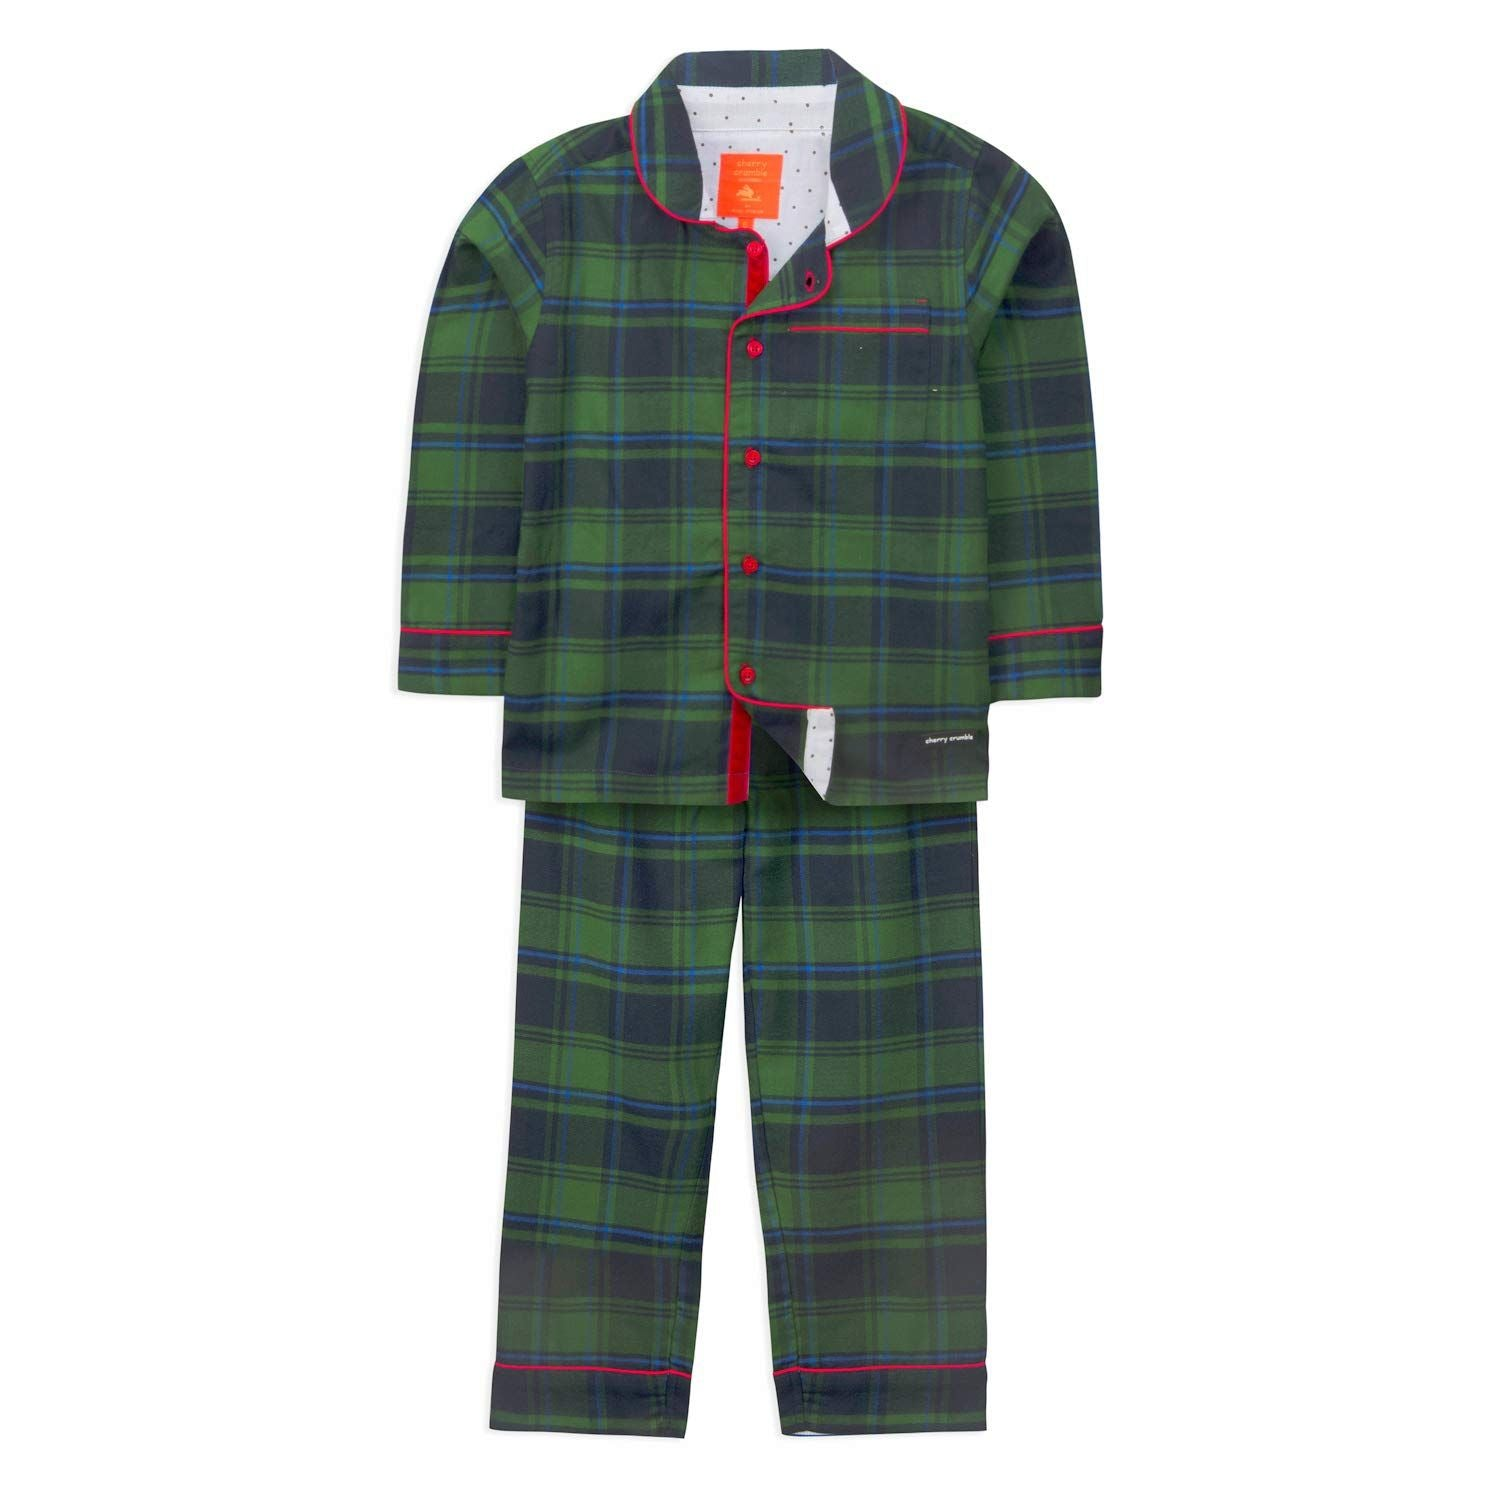 Eventide Nightsuit for kids